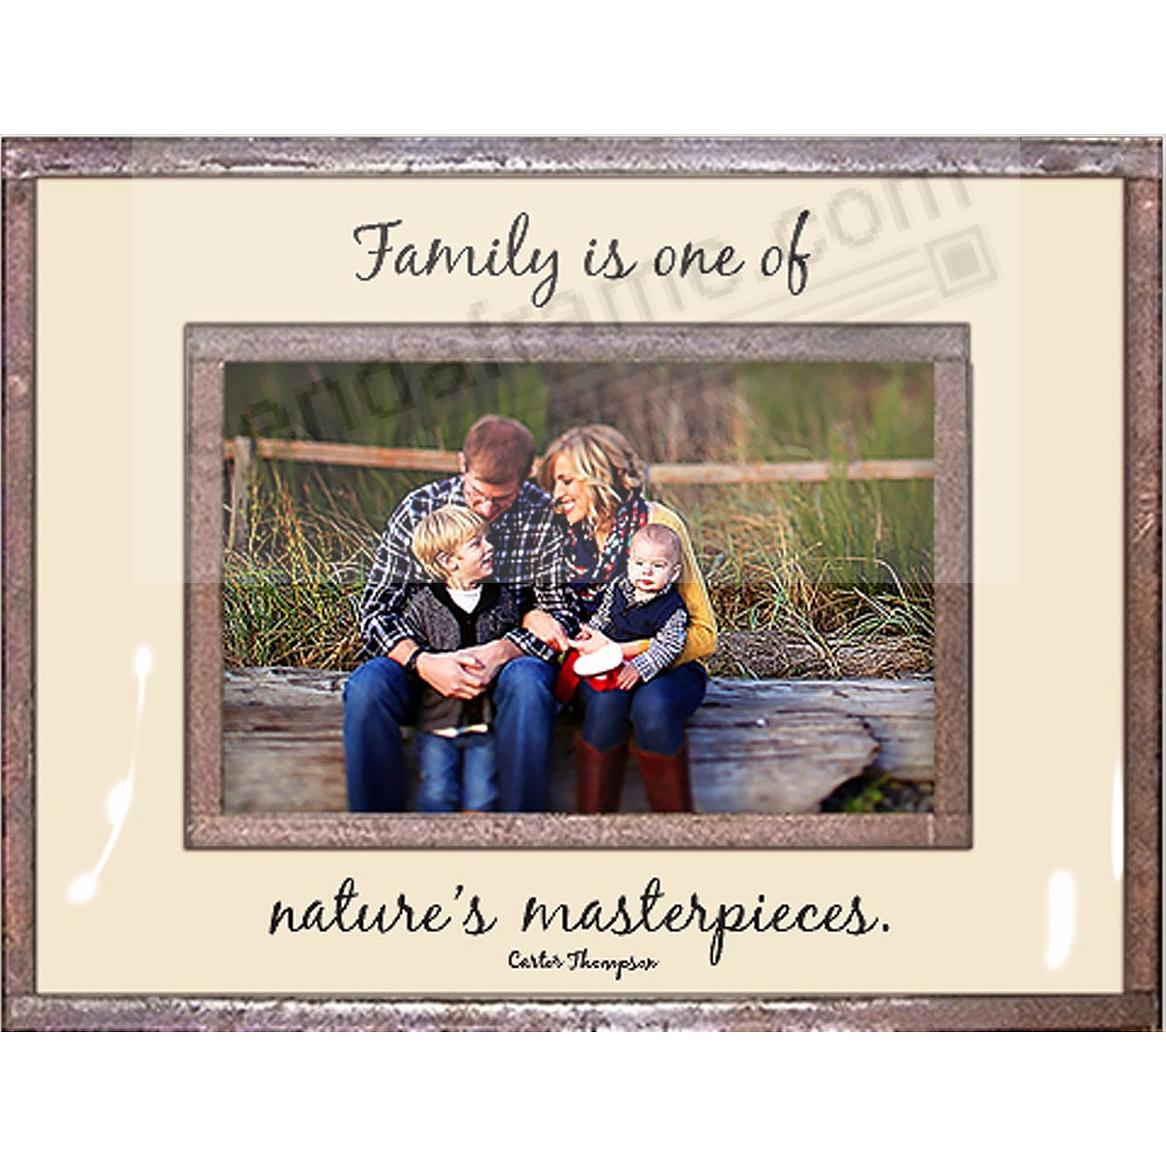 FAMILY IS ONE OF NATURE'S MASTERPIECES Copper + Clear Glass by Ben's Garden®